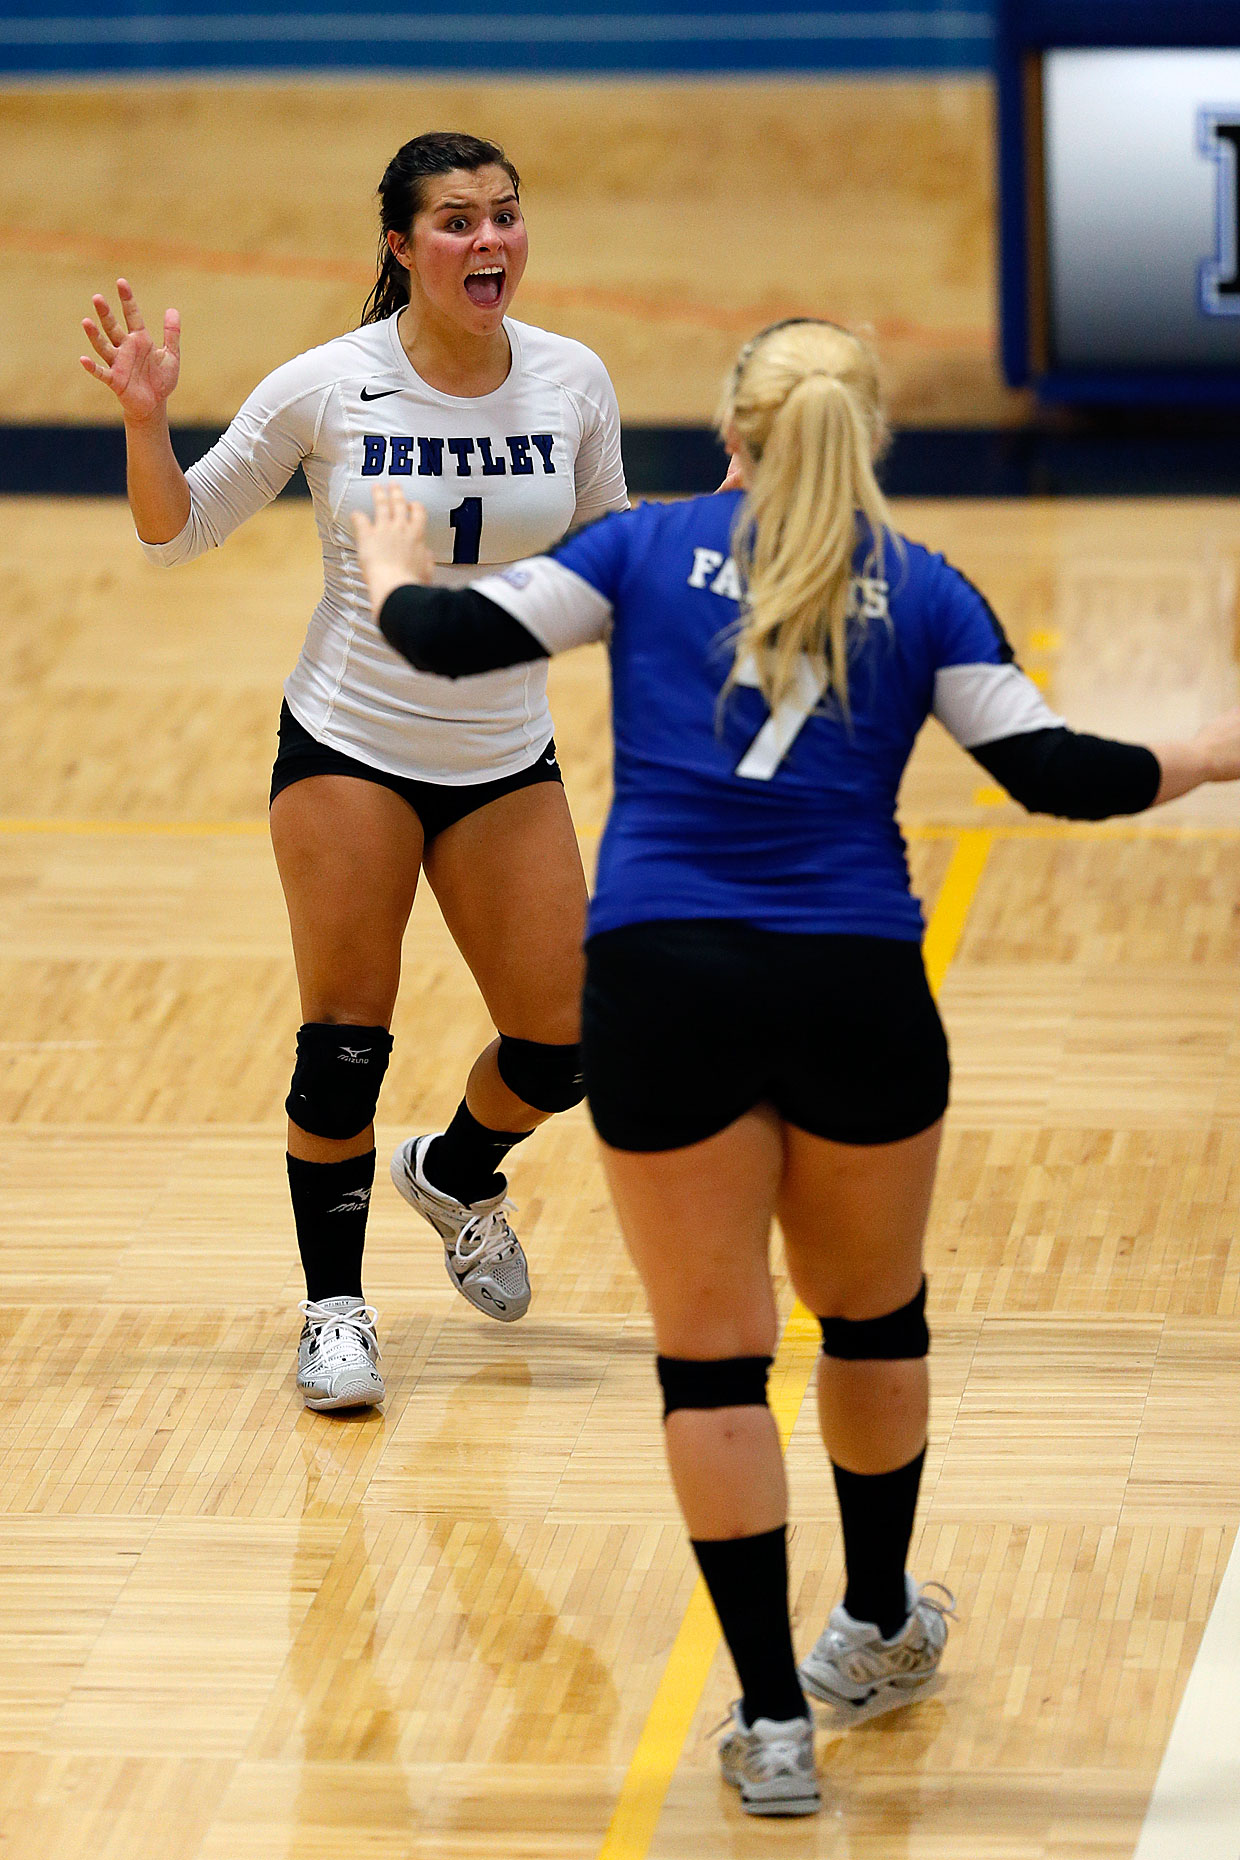 Bentley University volleyball players celebrate during a match against Merrimack.